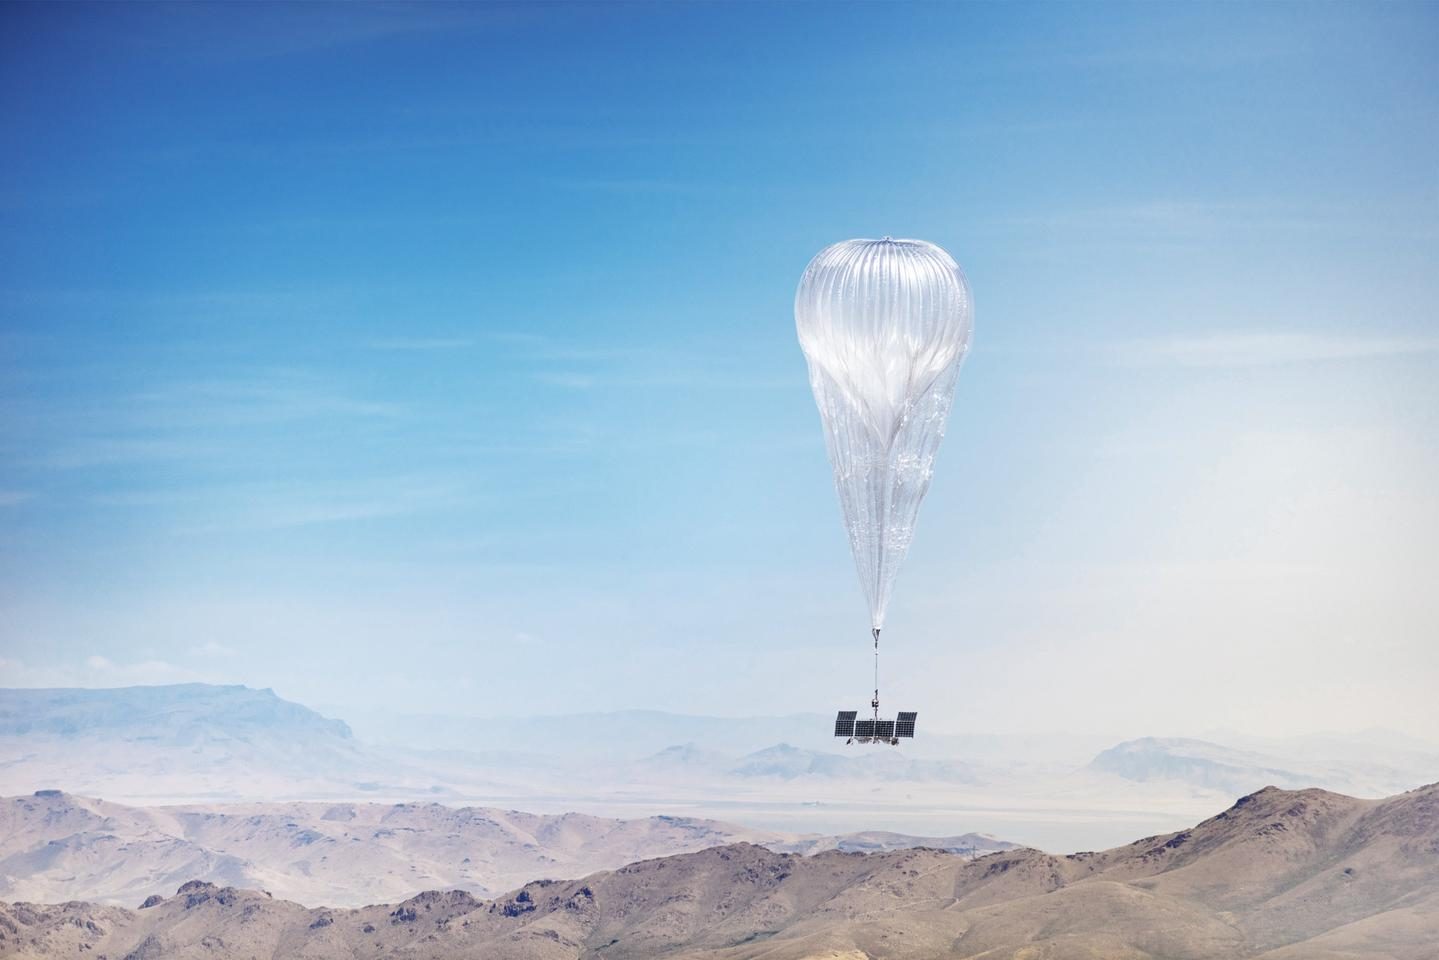 Alphabet has decided to shut down its Project Loon venture